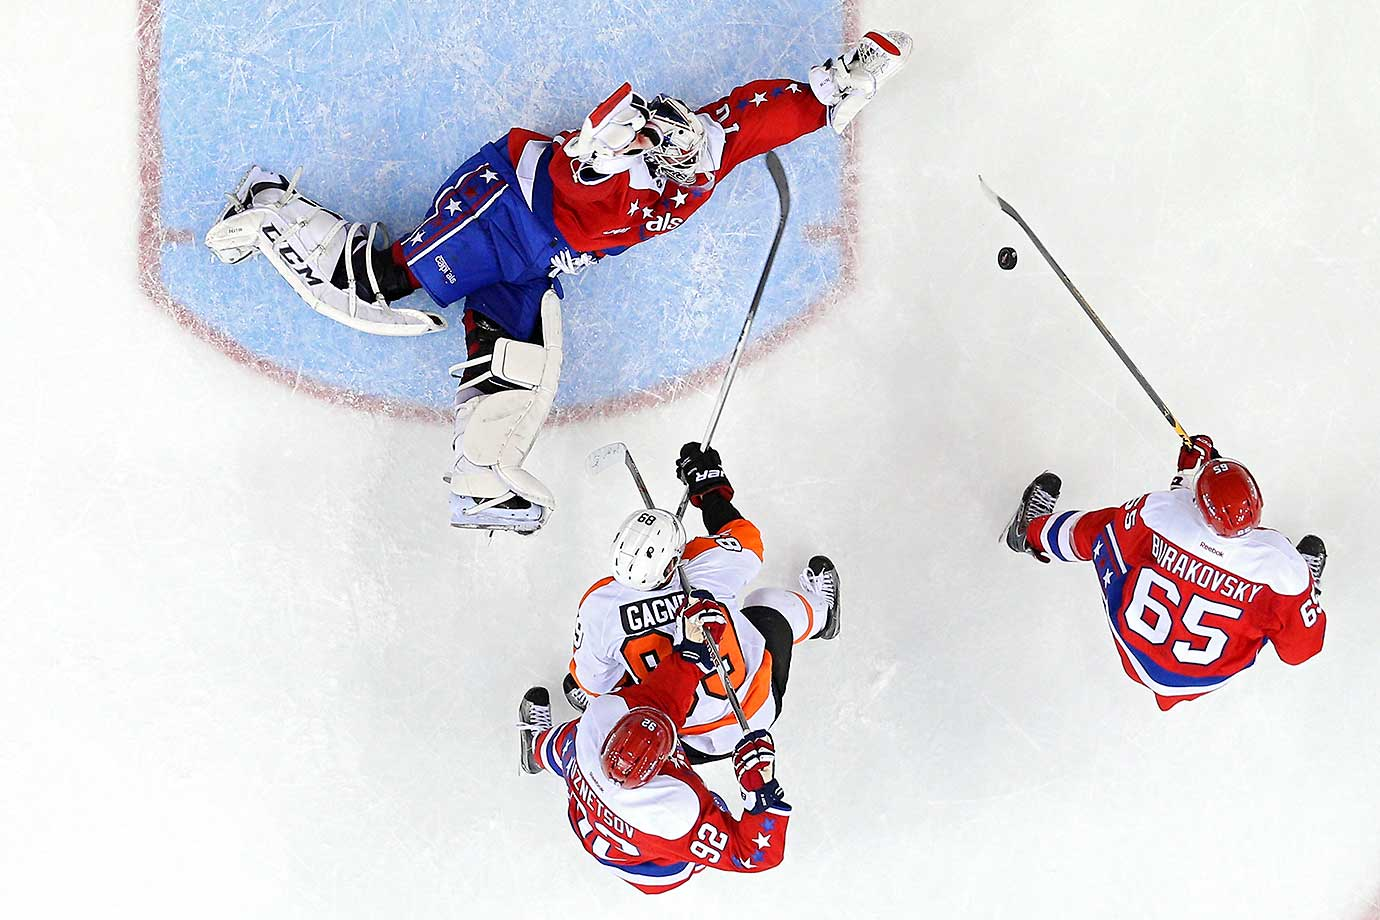 Goalie Braden Holtby of the Washington Capitals makes a save on Sam Gagner of the Philadelphia Flyers at Verizon Center in Washington, D.C. The Flyers won, 4-3, in overtime.